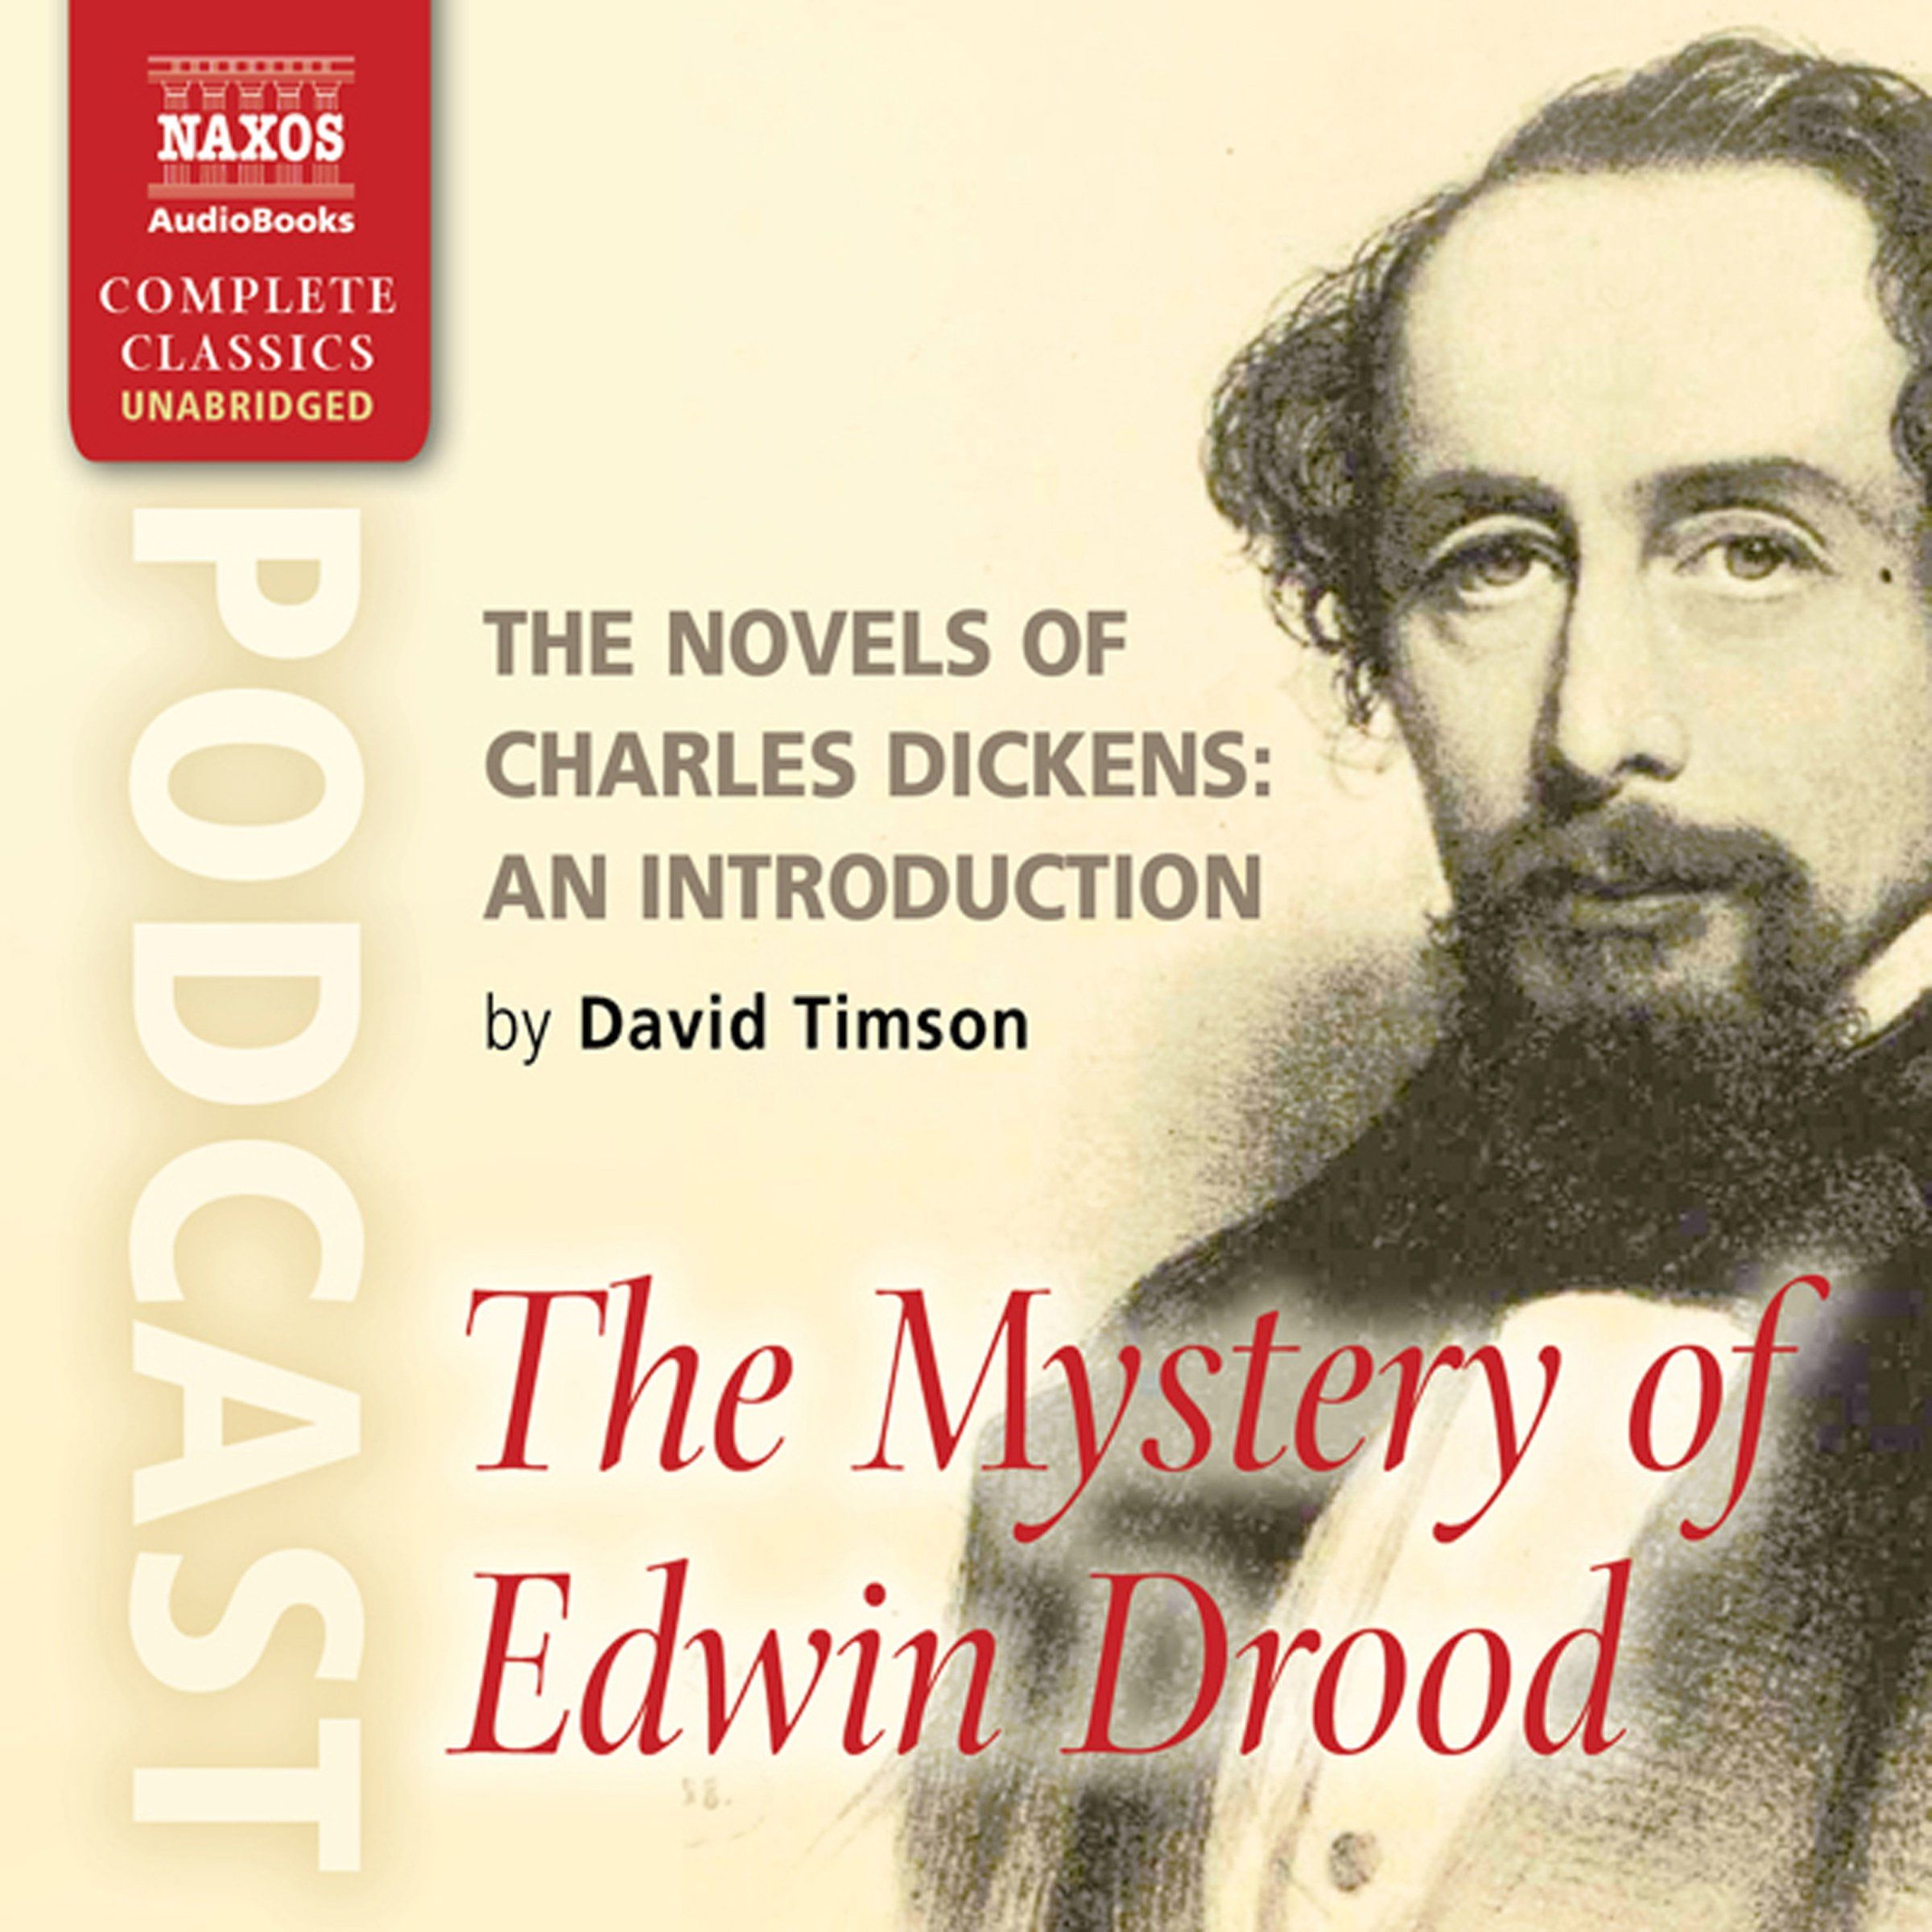 The Novels Of Charles Dickens An Introduction By David Timson To The Mystery Of Edwin Drood Want Additional Info Click Charles Dickens Novels Audio Books